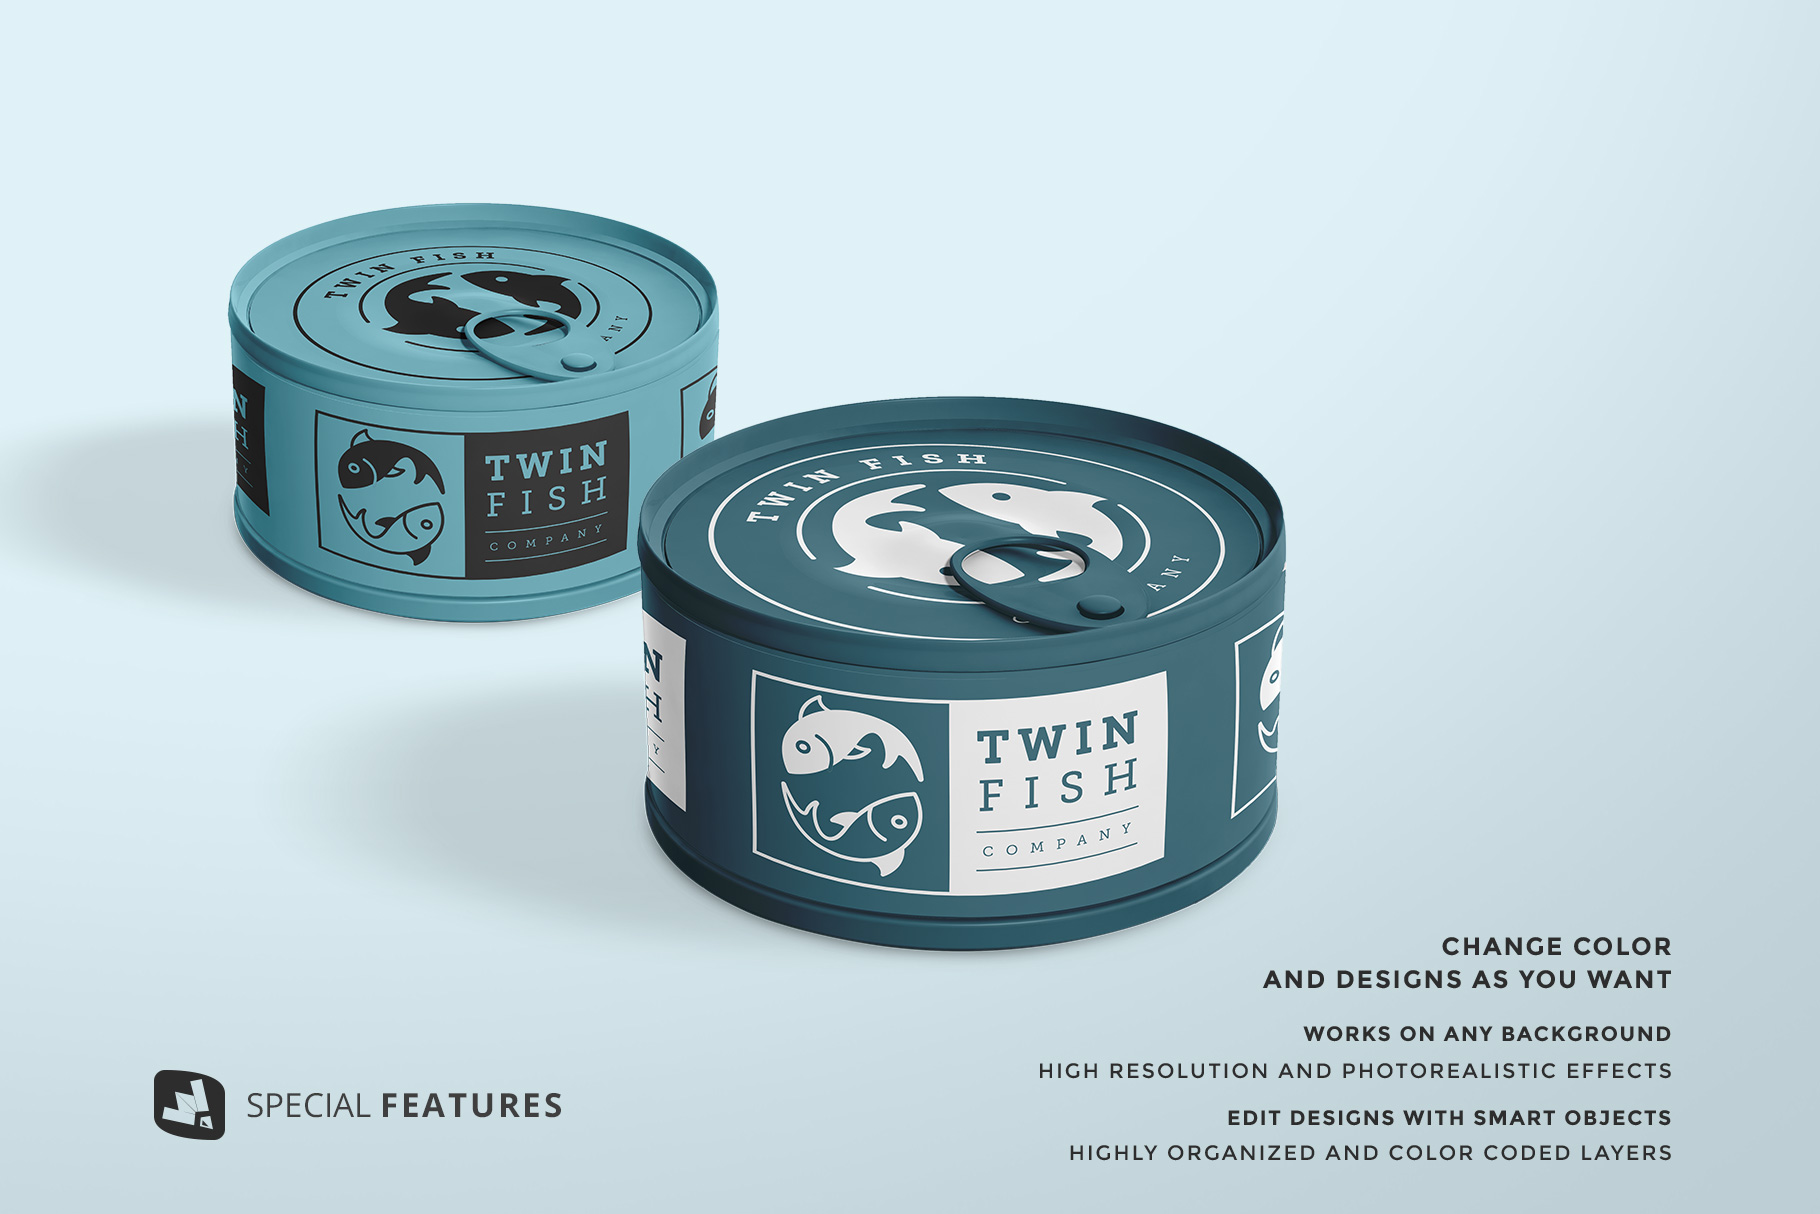 special features of the circular canned food packaging mockup